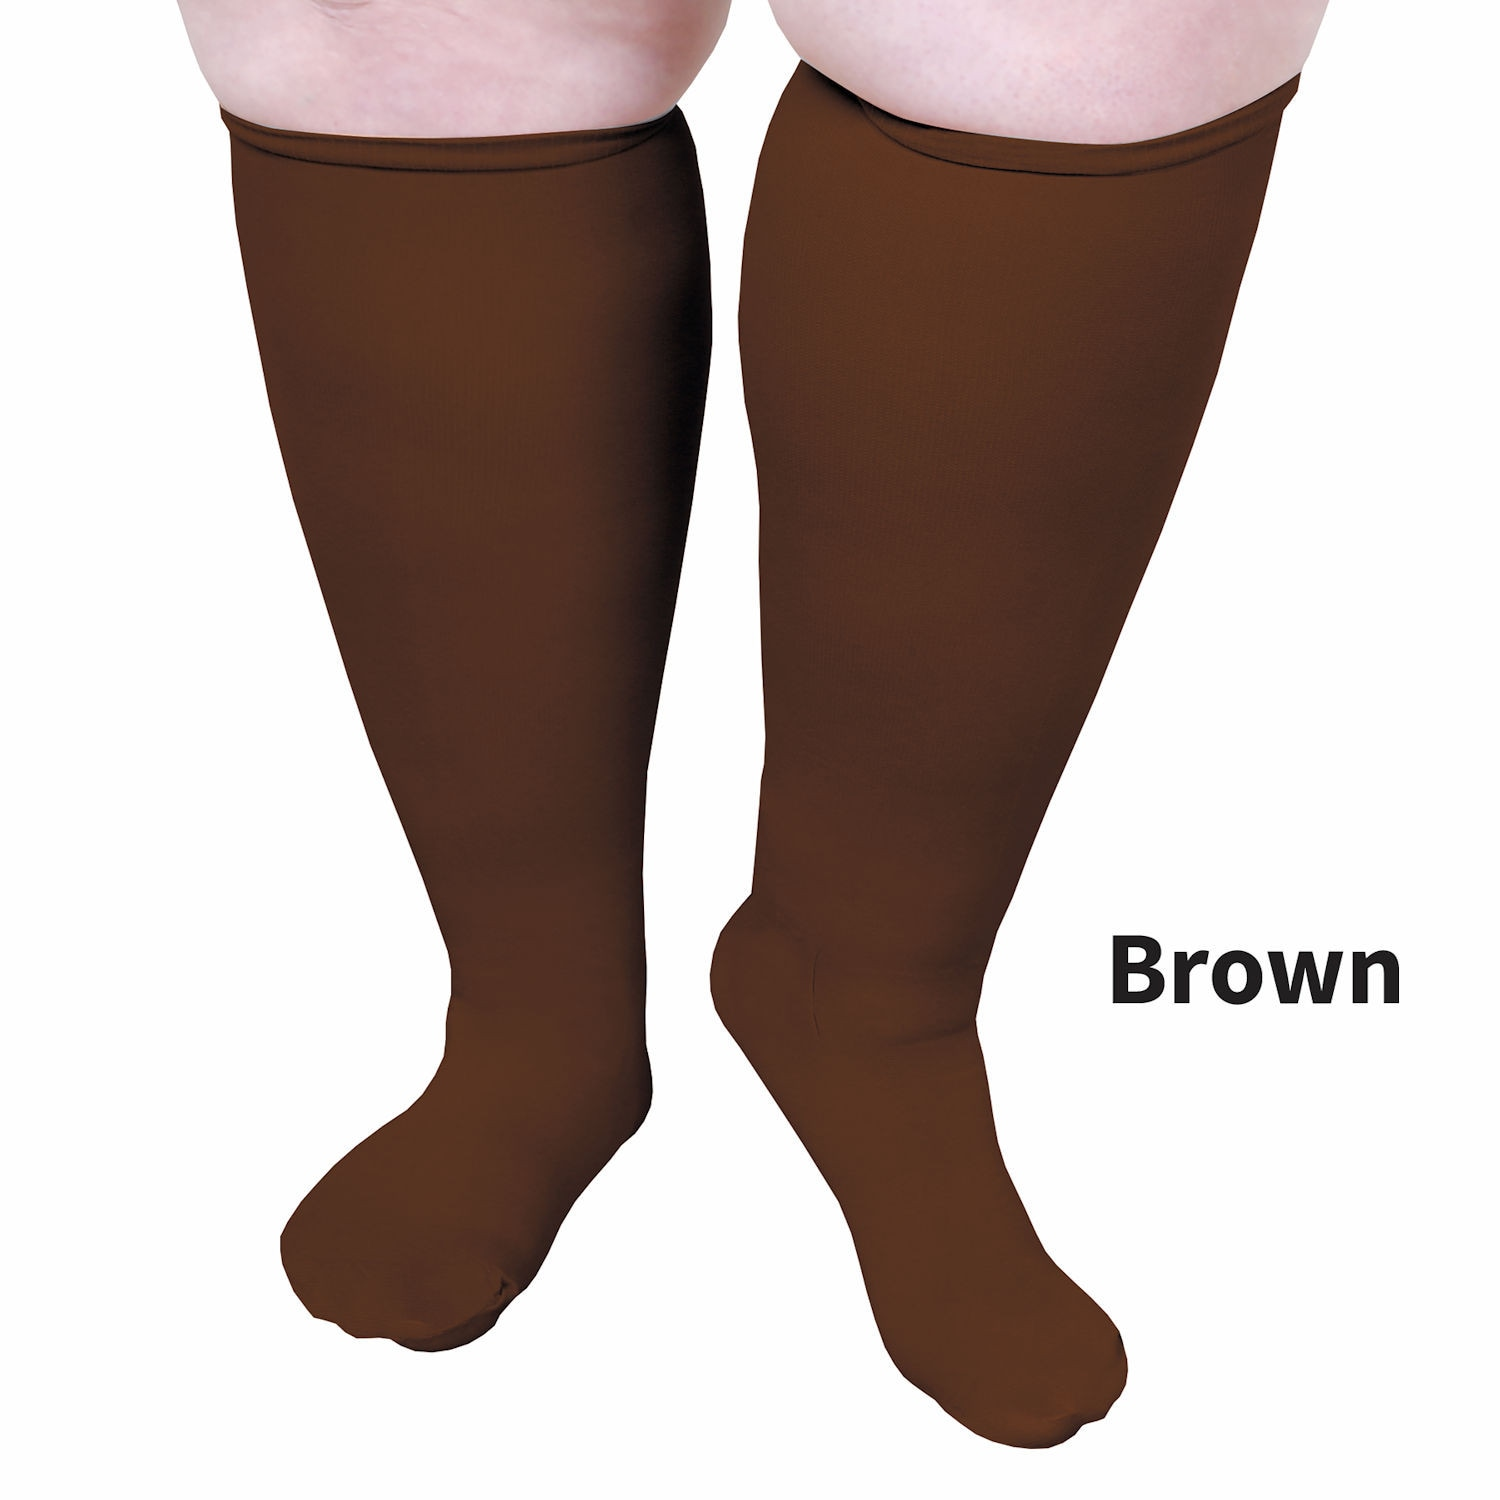 Unisex-Extra-Wide-Moderate-Compression-Knee-High-Socks-Up-to-XW-4E-amp-26-034-Calf thumbnail 10